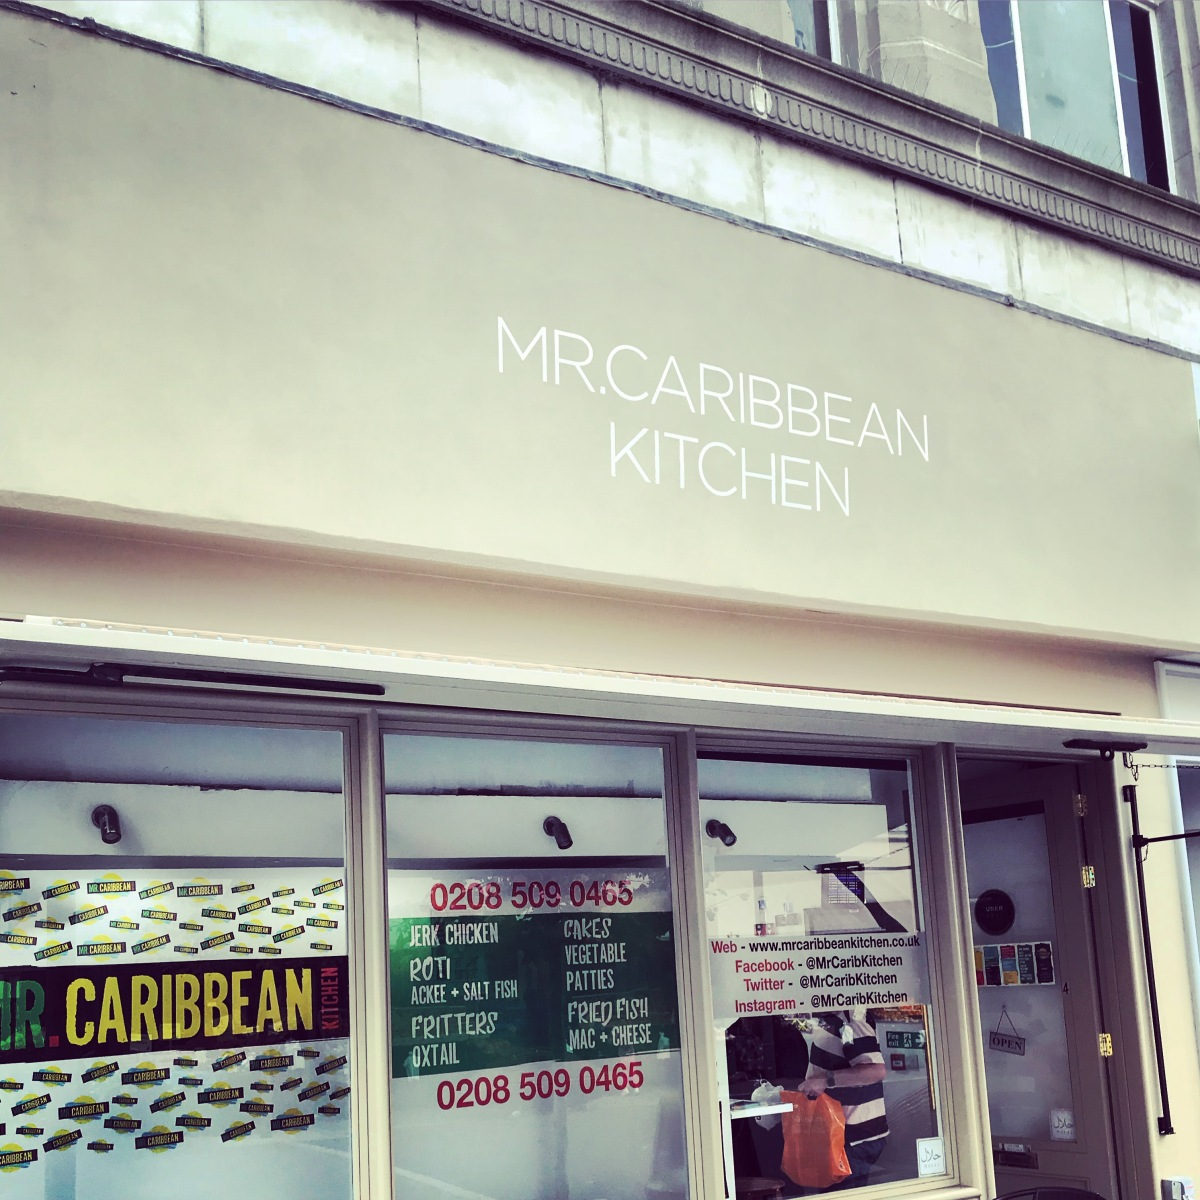 Mr Caribbean Kitchen